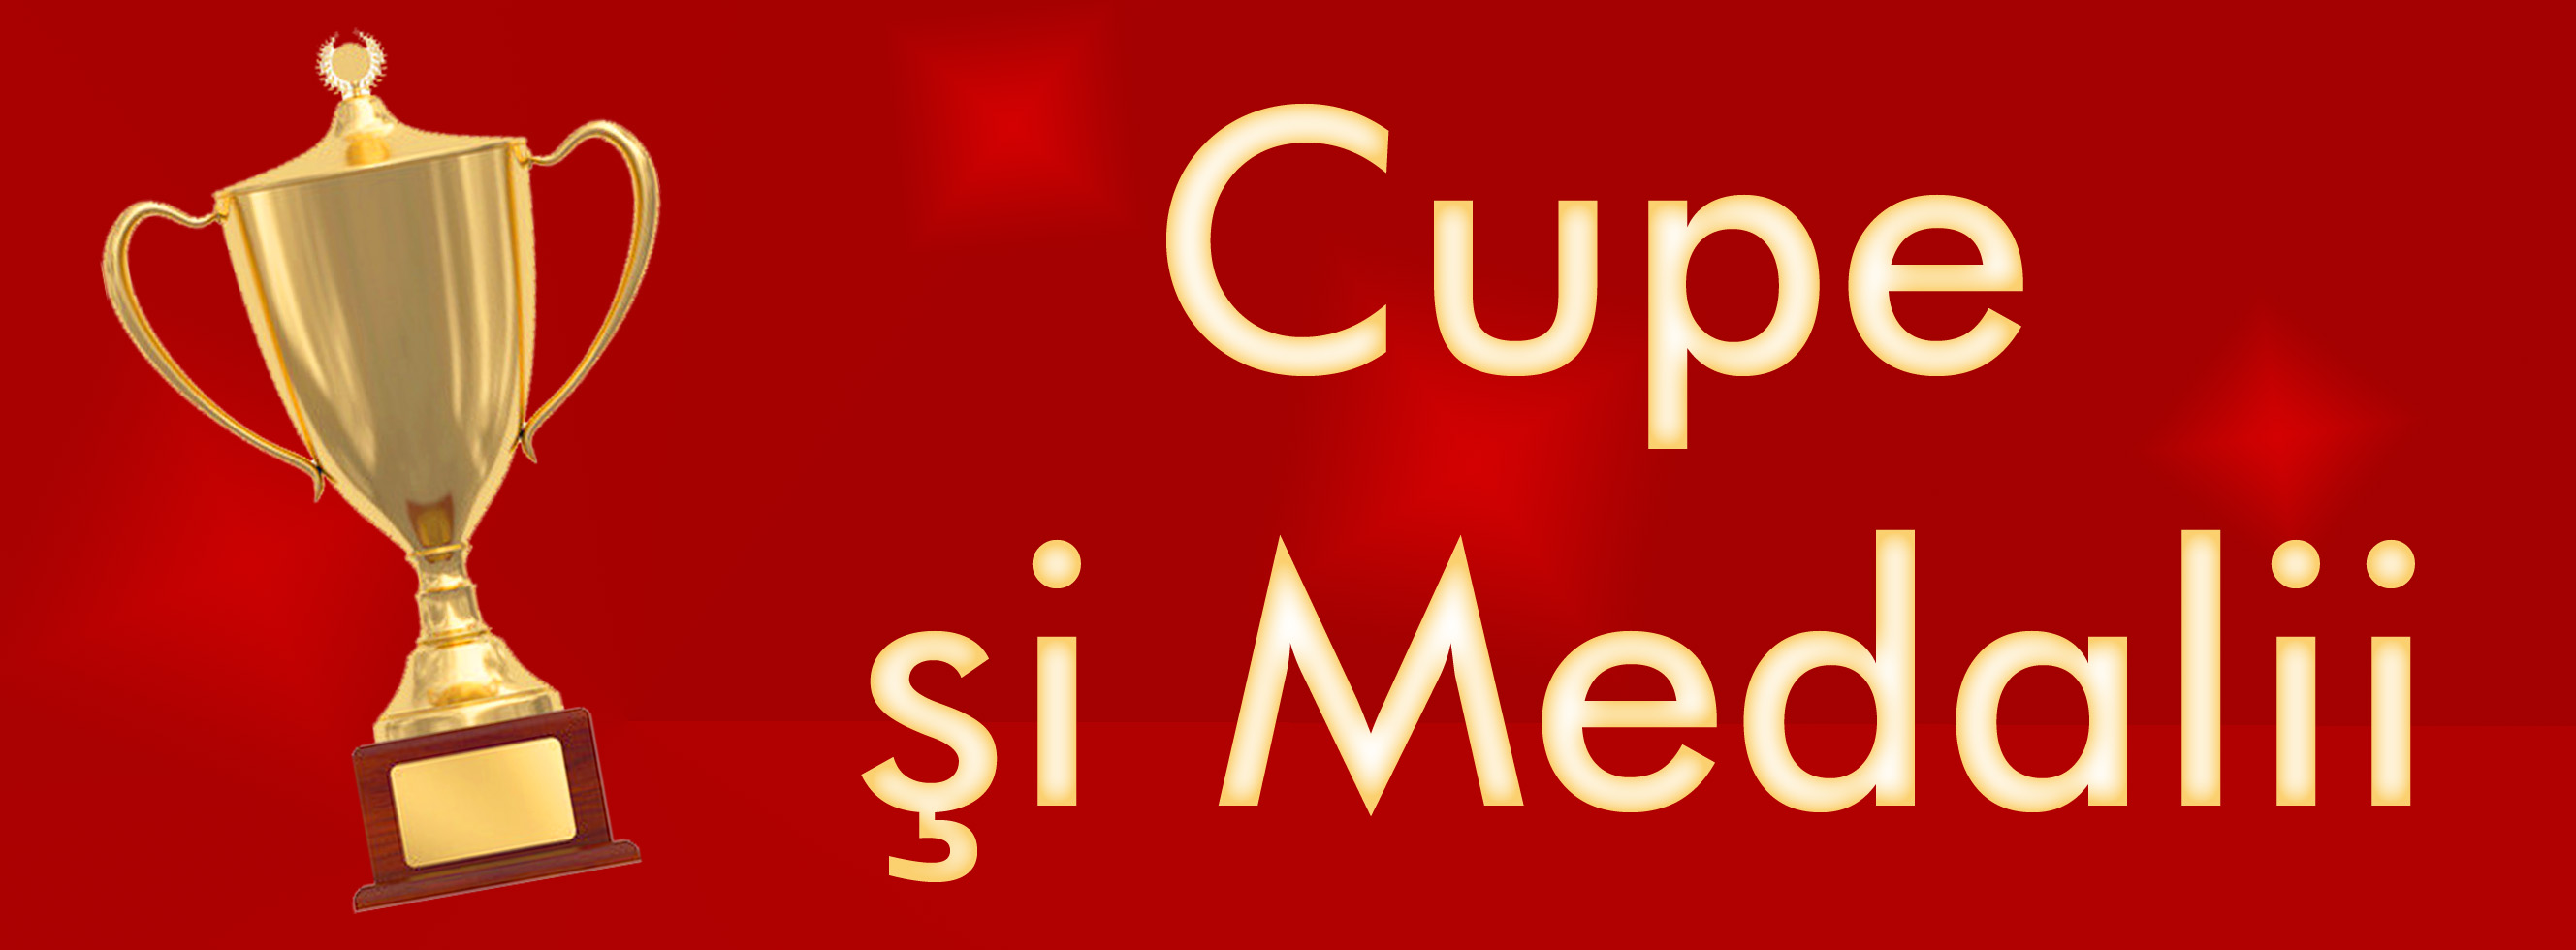 Cupe si Medalii